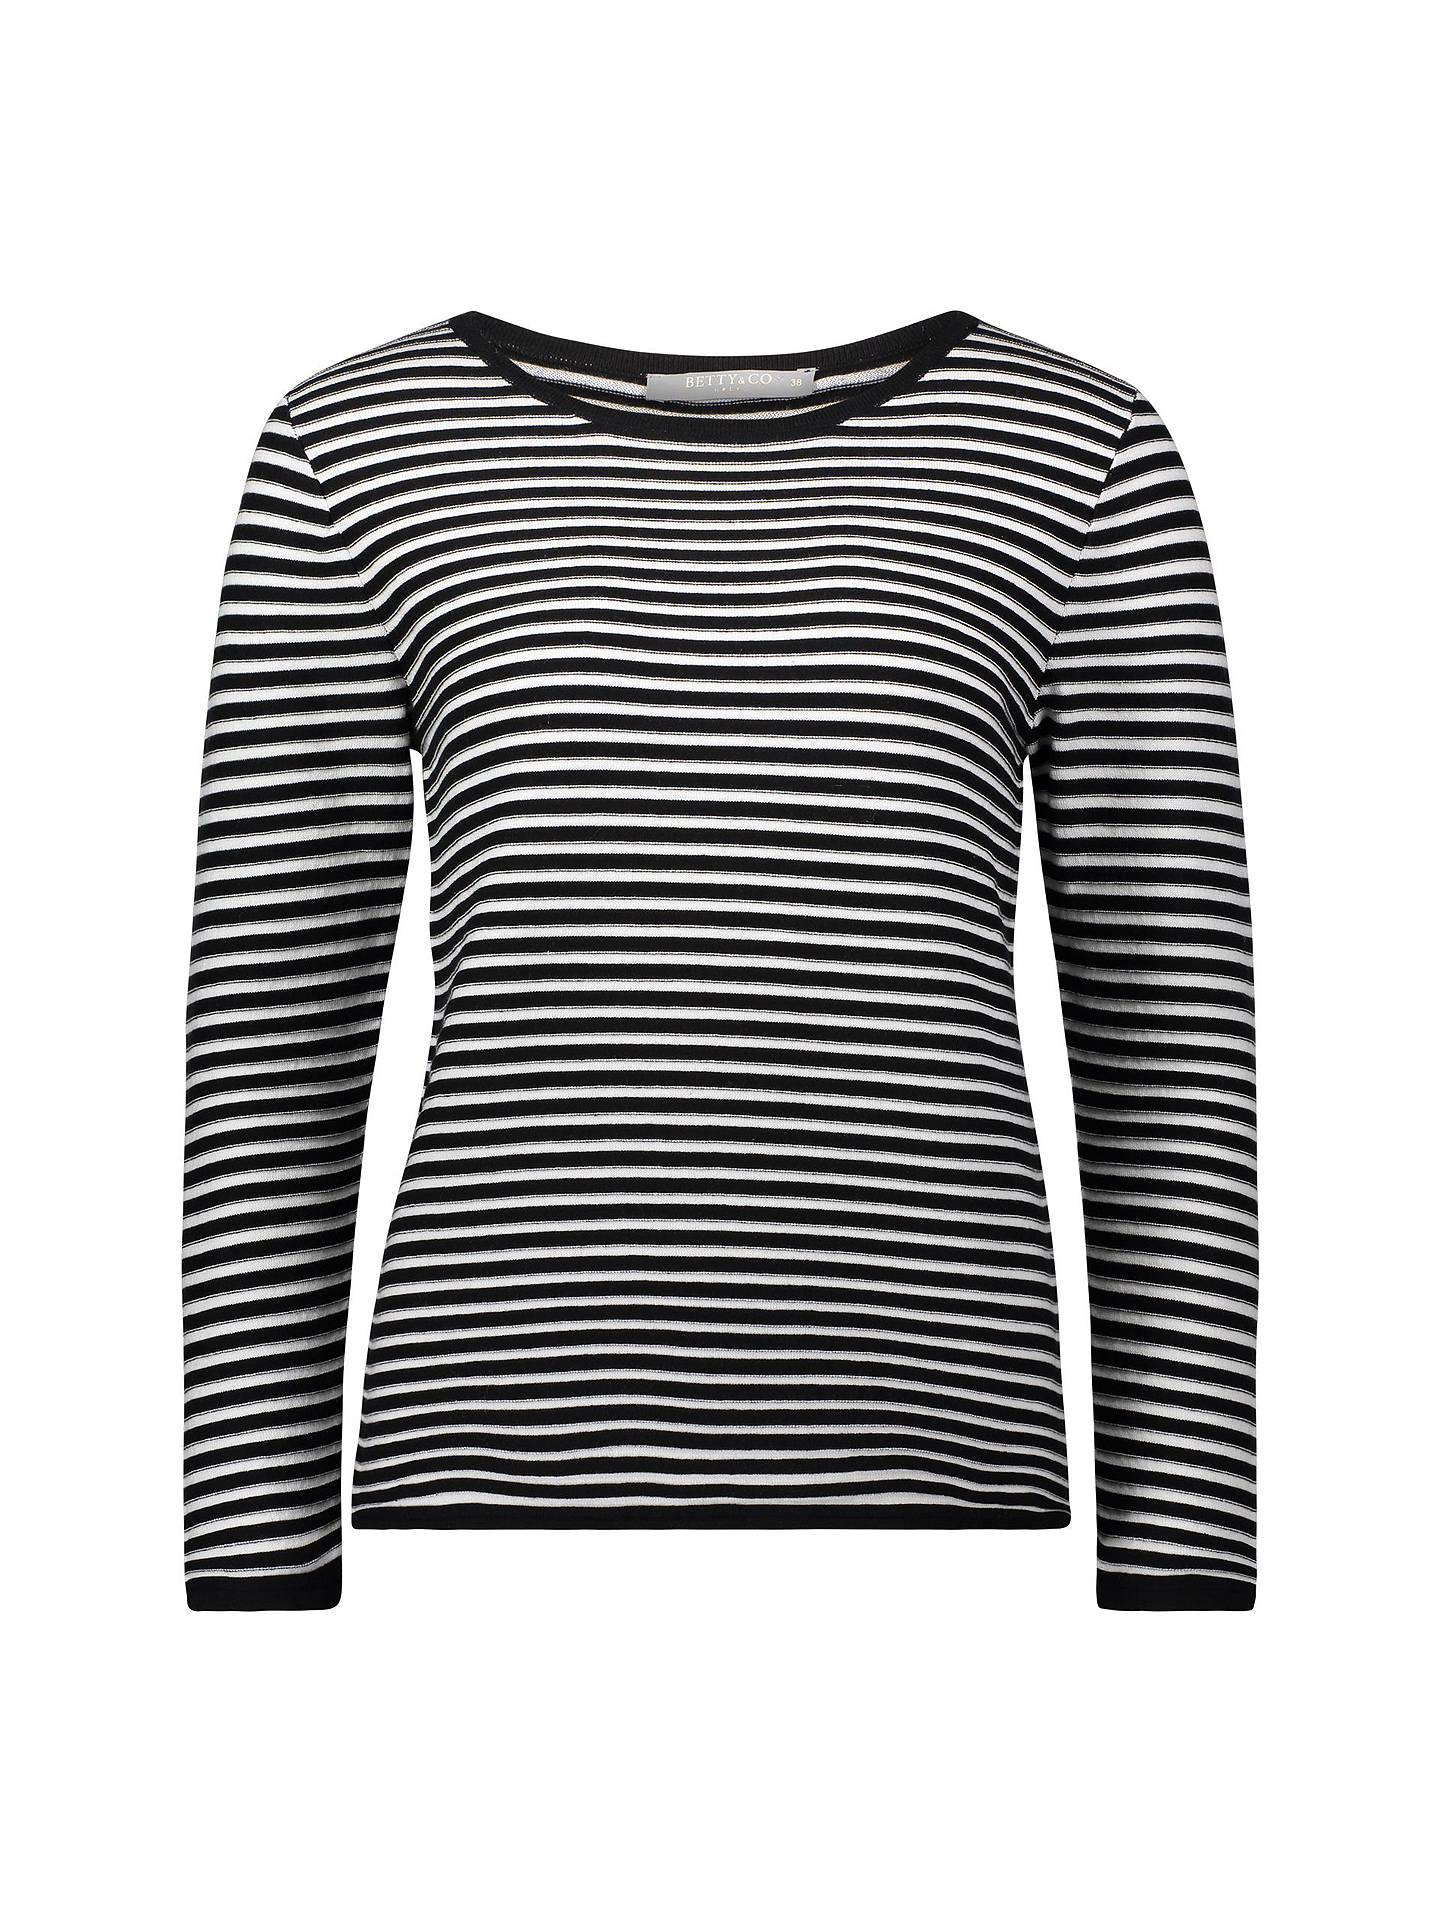 BuyBetty & Co. Striped Jumper, Black/White, 10 Online at johnlewis.com